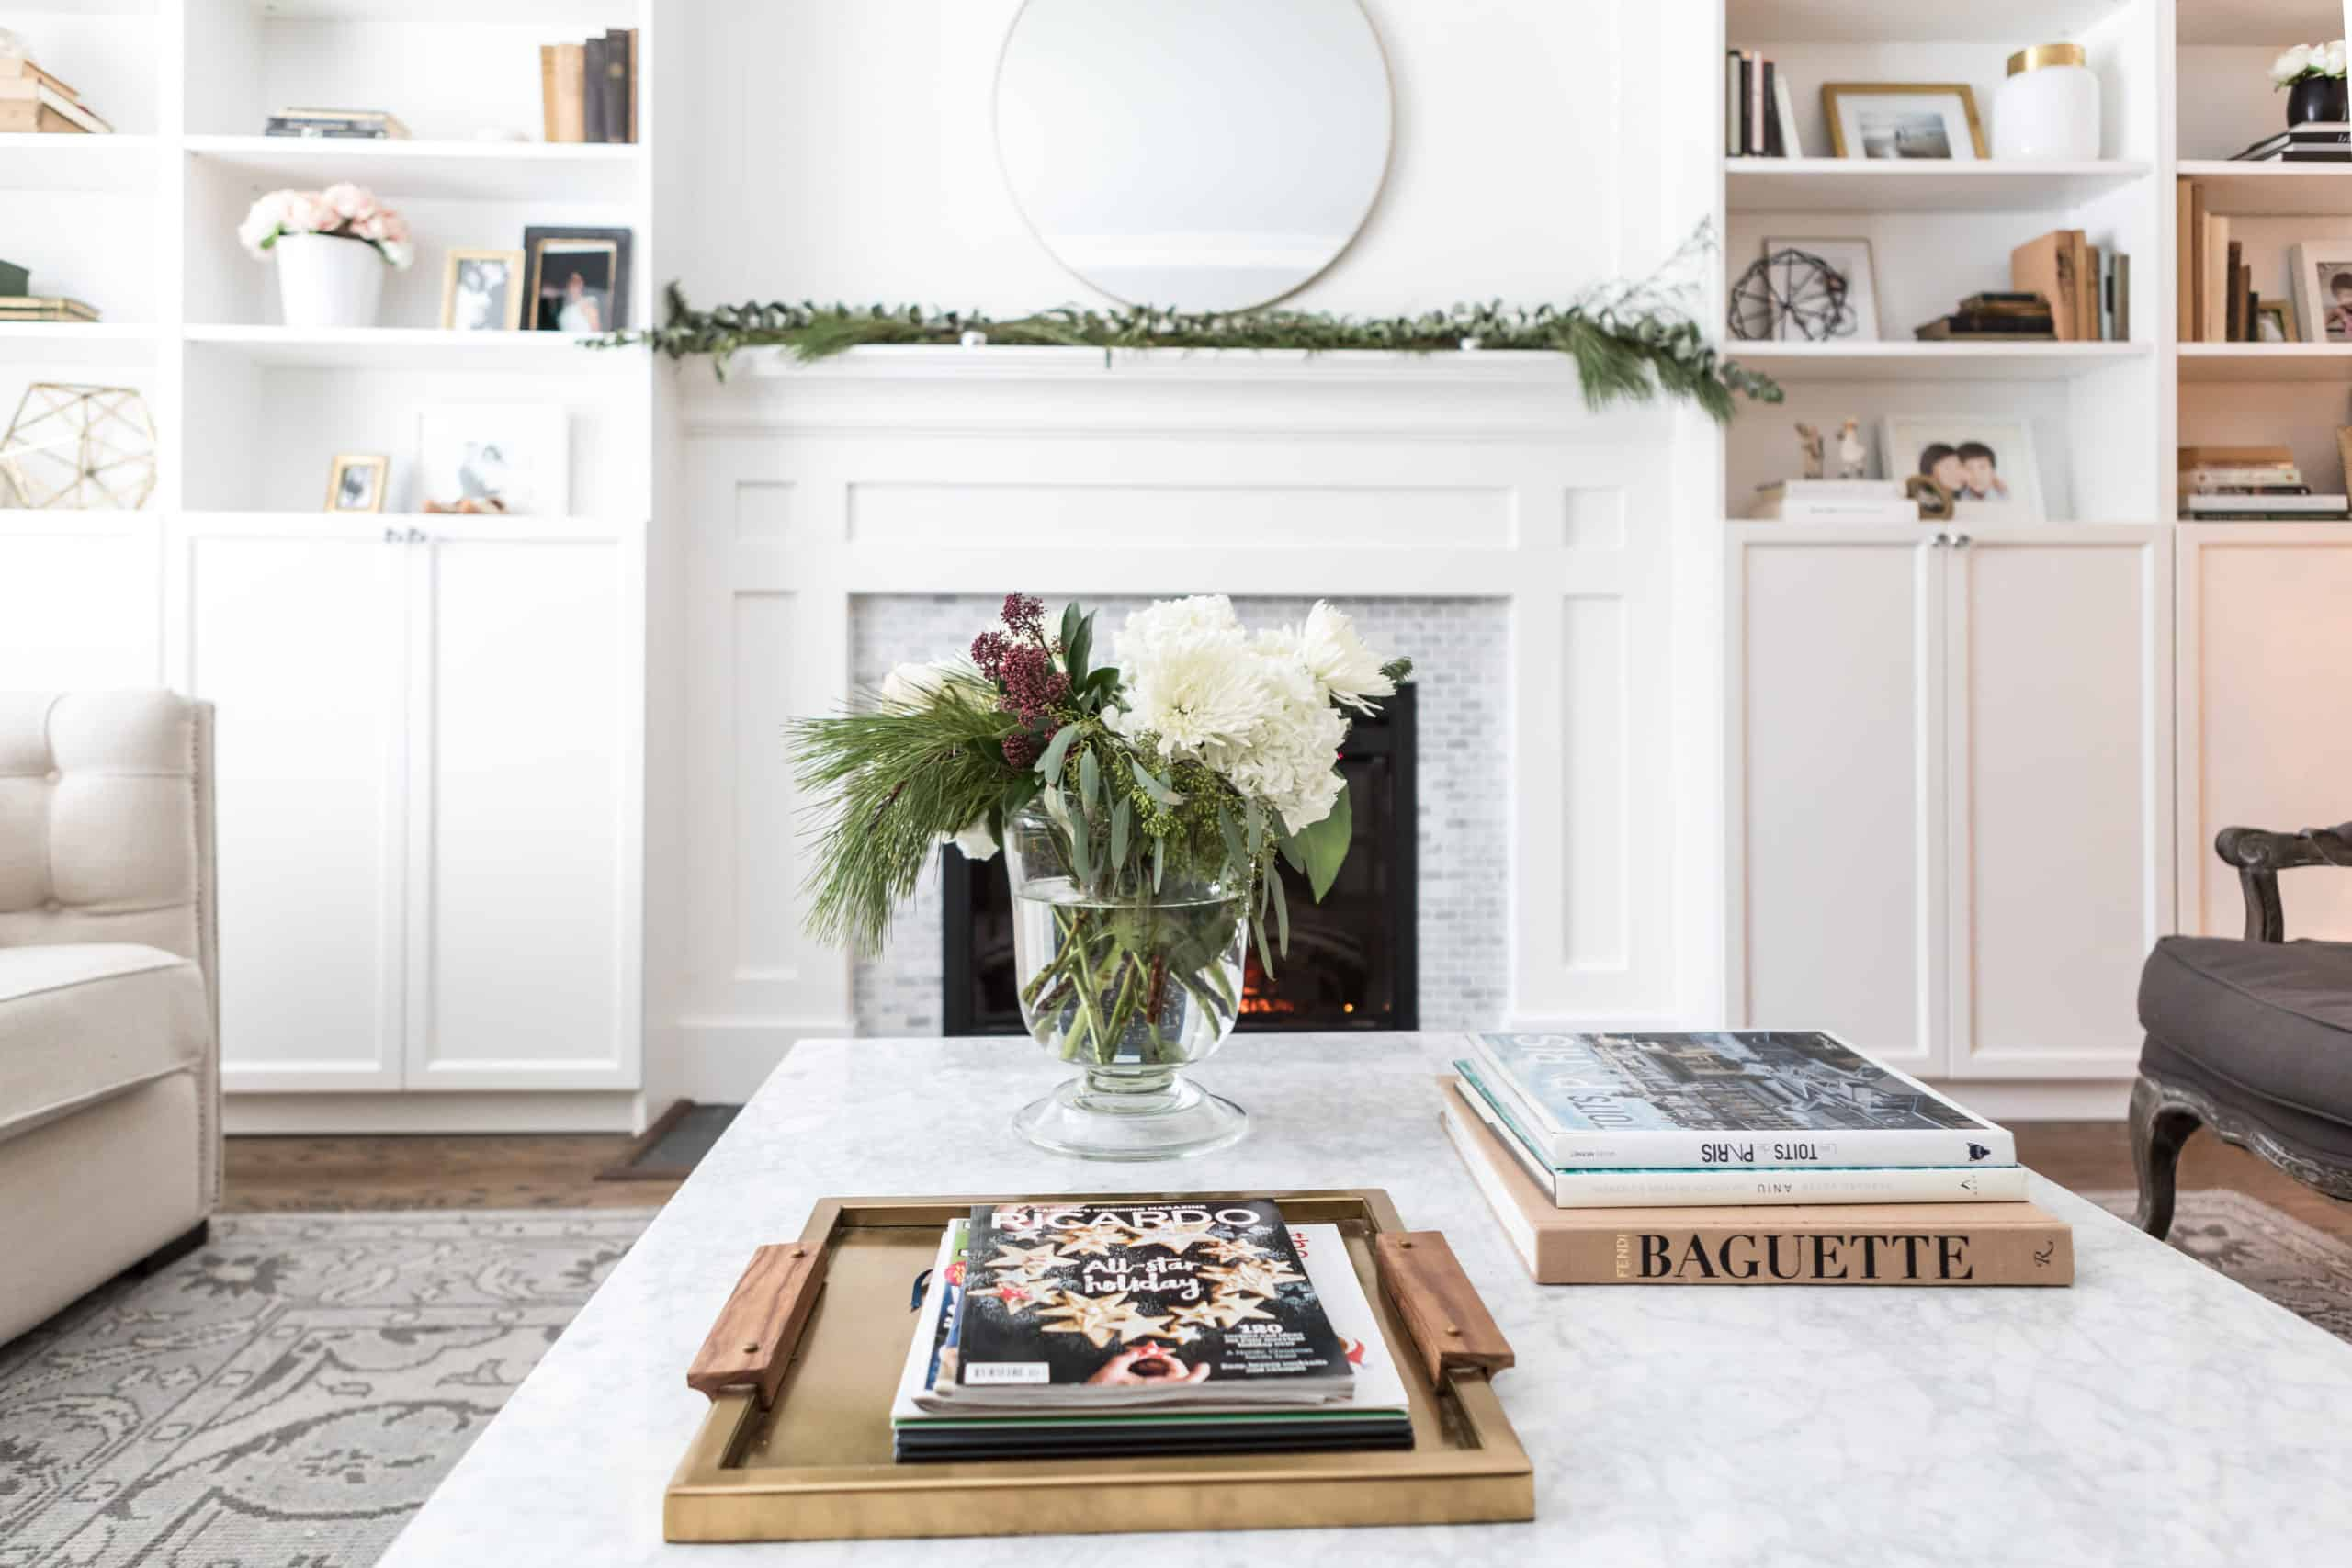 Books and flowers on a marble coffee table